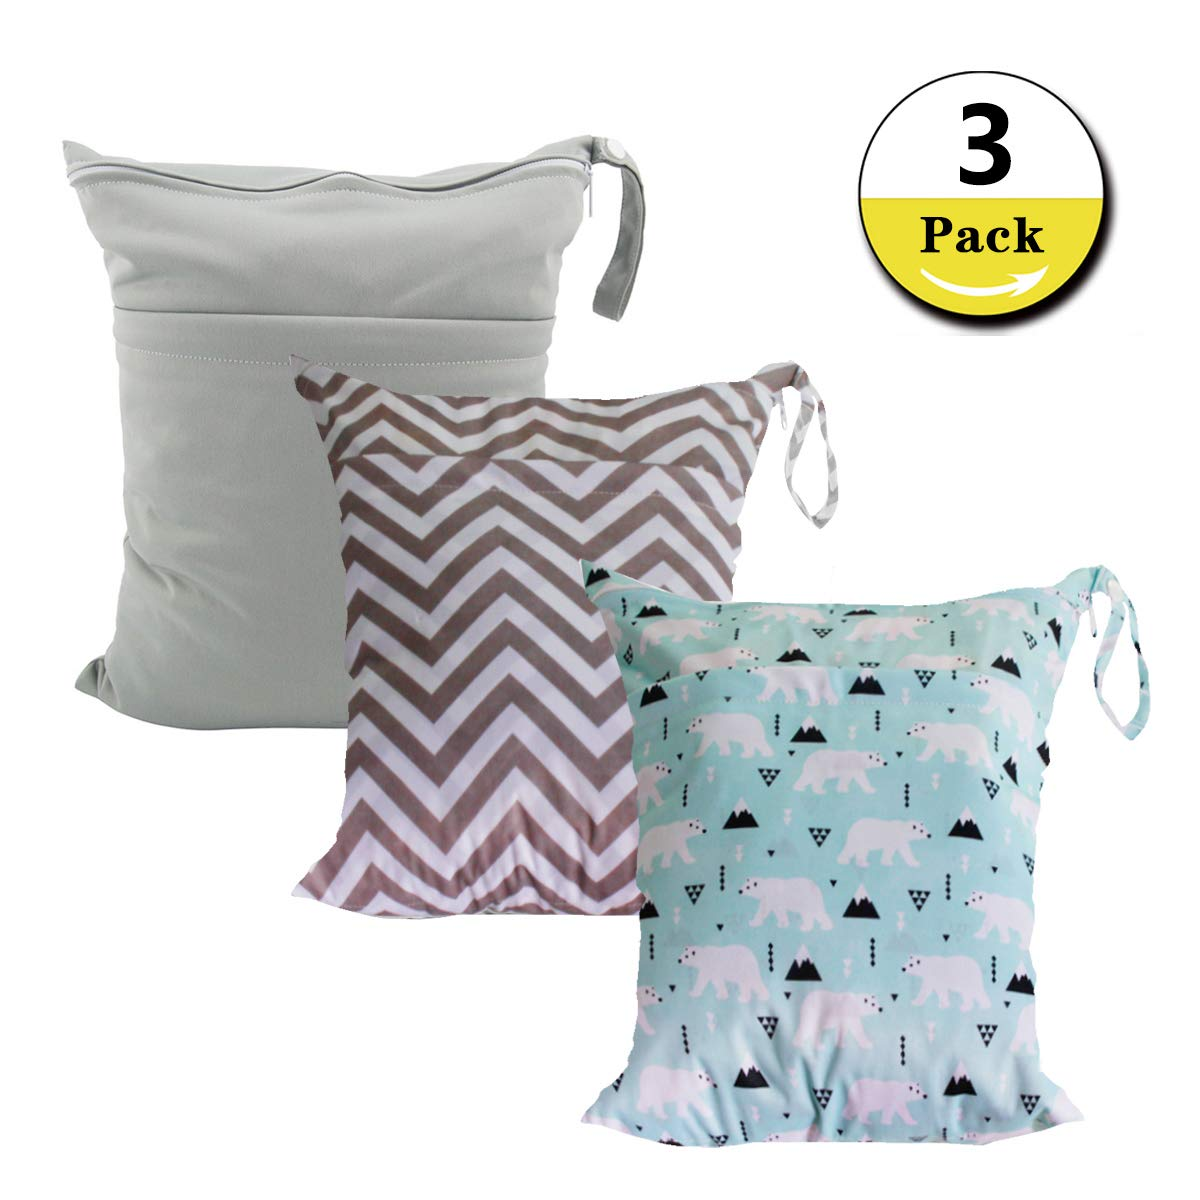 3 Pack Reusable Cloth Disper Wet Bags Travel Wet and Dry Disper Pocket Bag,Waterproof with Two Zipped